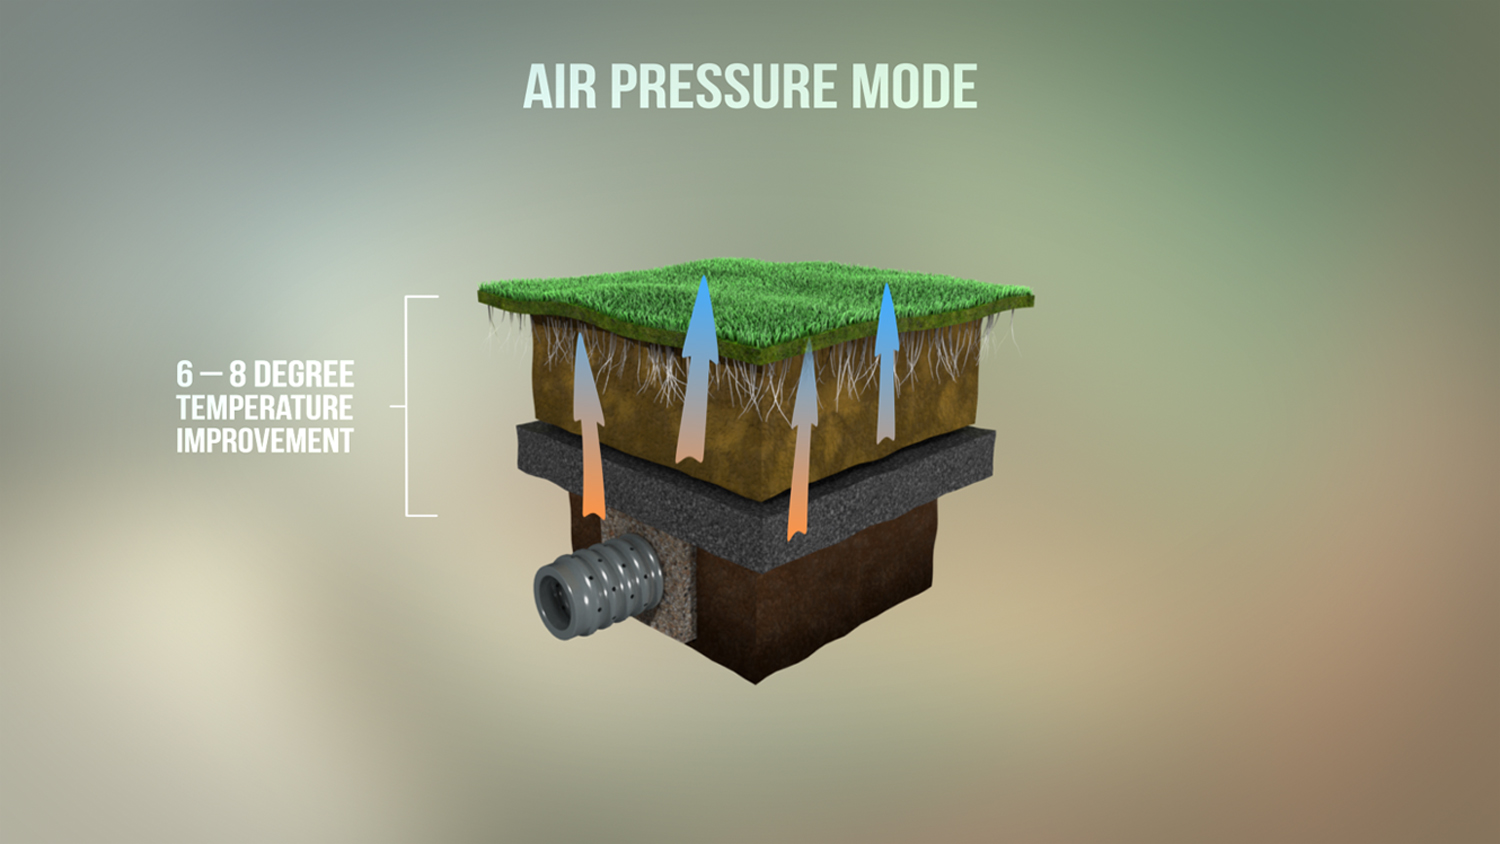 SubAir Systems Air Pressure Mode